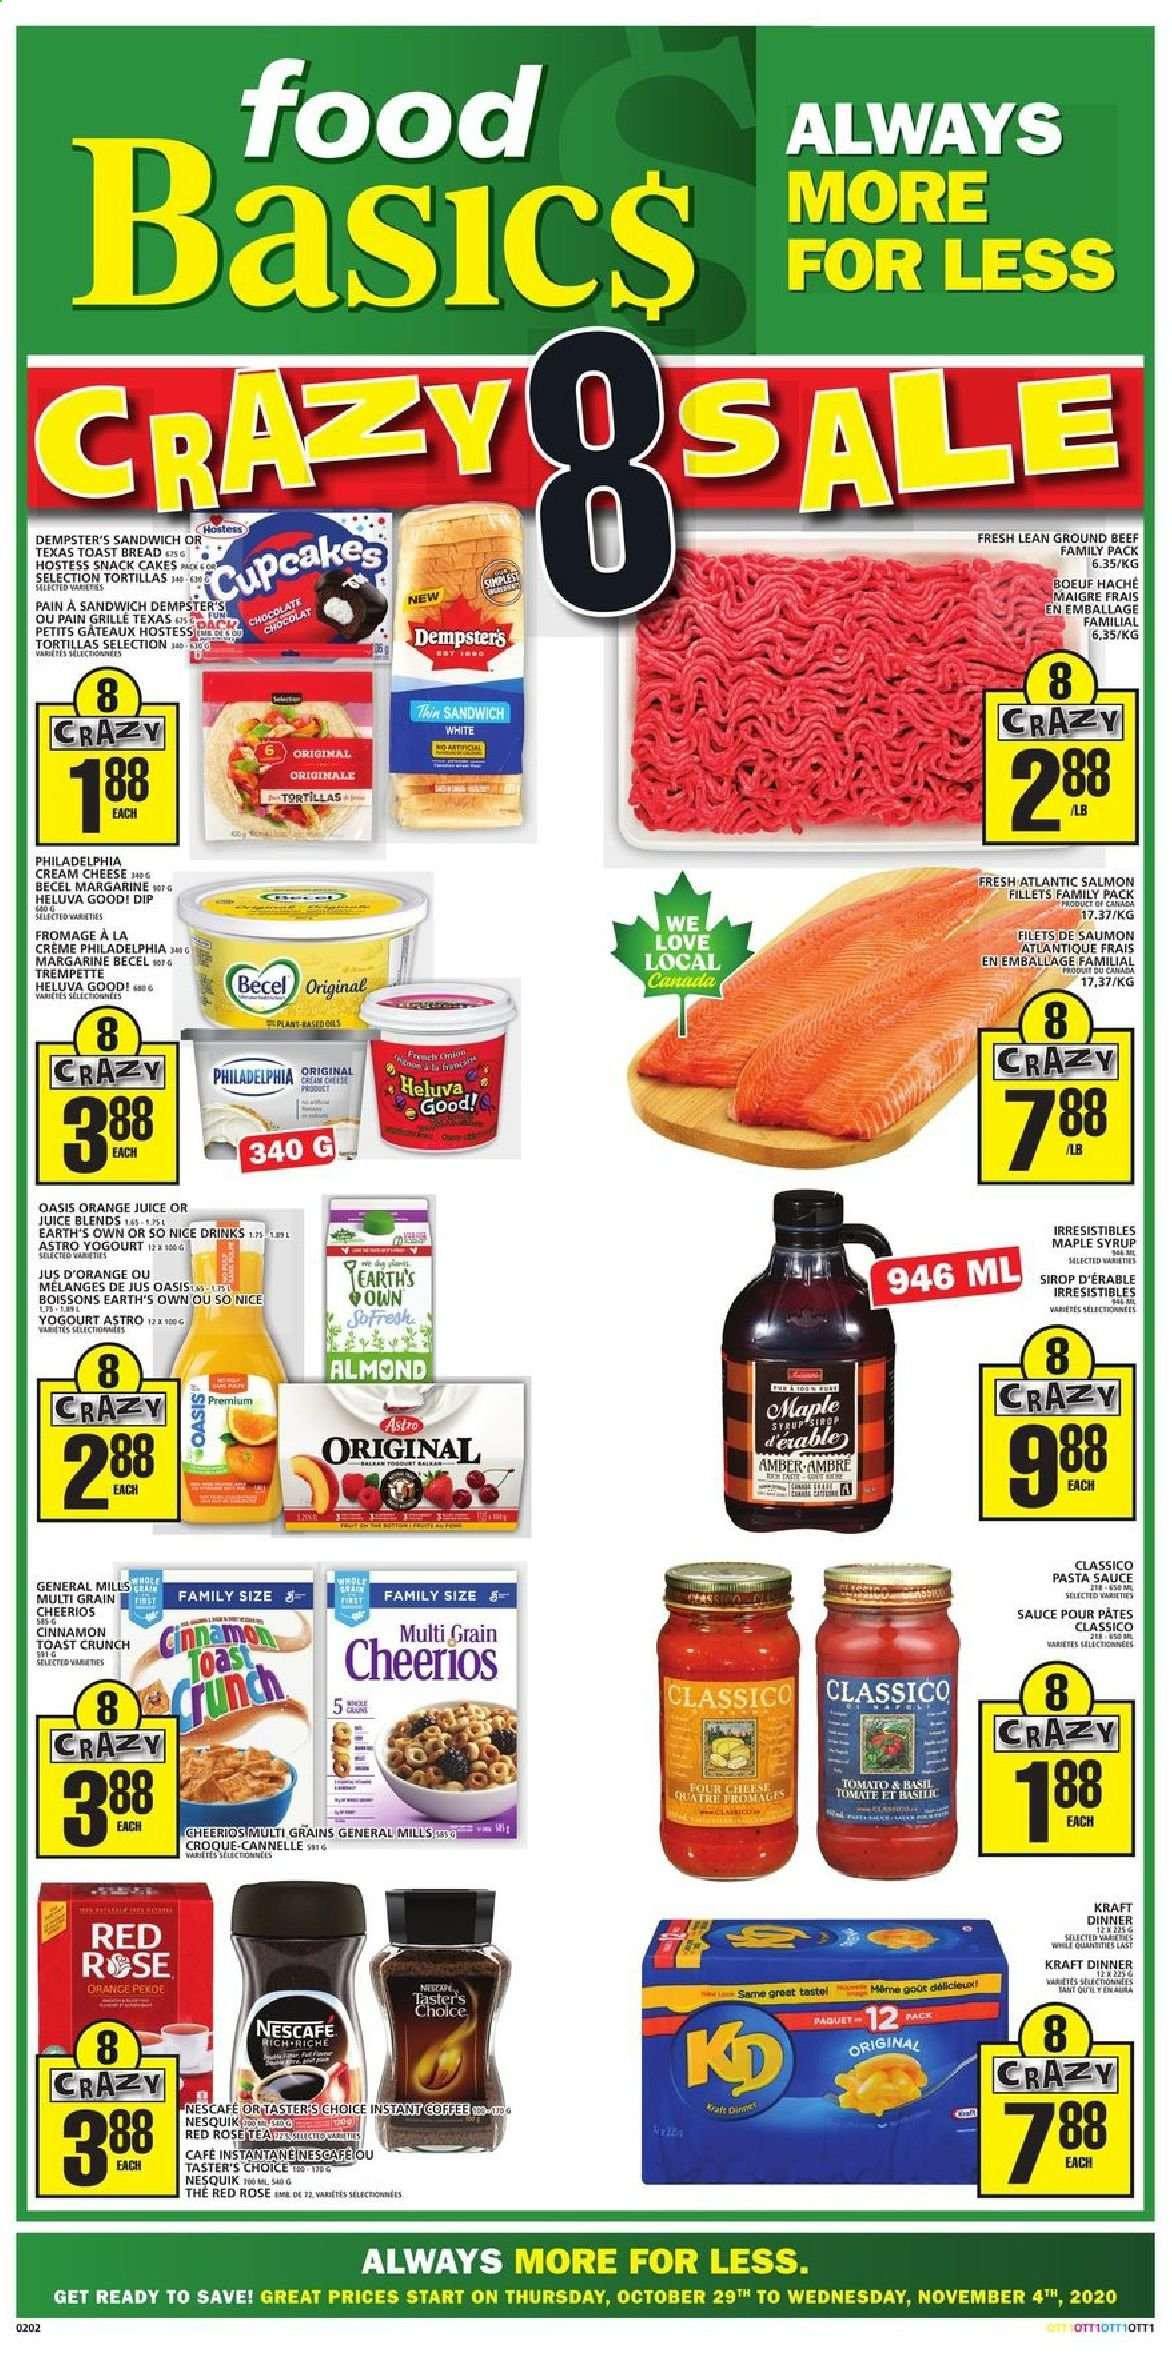 Food Basics Flyer - October 29, 2020 - November 04, 2020 - Sales products - always, amber, basil, beef meat, bread, cream cheese, crème, cupcakes, dolce & gabbana, ground beef, maple syrup, margarine, salmon, tea, tortillas, philadelphia, cheerios, pasta sauce, orange juice, chocolate, cheese, juice, sandwich, snack, pasta, sauce, tomates, chocolat, café, saumon, bœuf, cannelle, four, fromage, grille, tortilla, sirop, jus d'orange, nescafé, pâtes, jus, family pack, tomato, syrup, rosé. Page 1.